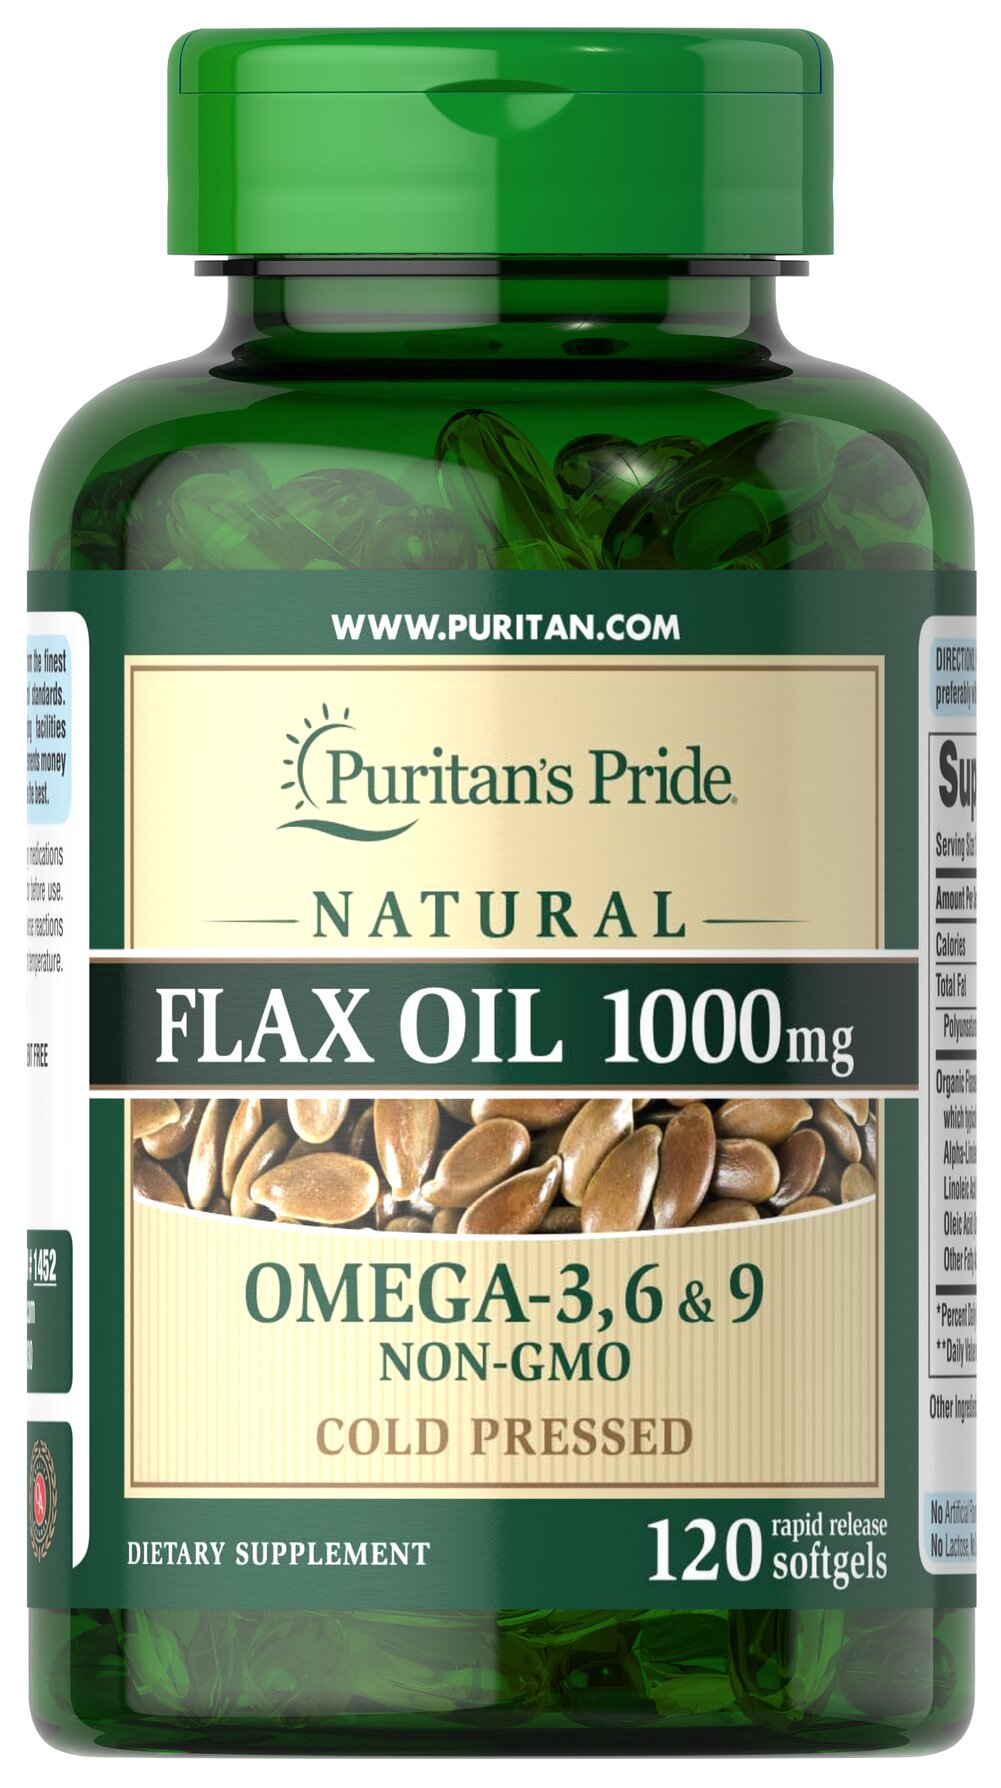 Natural Flax Oil 1000 mg <p>Flaxseed — one of the most concentrated vegetarian source of <strong>Omega-3 fatty acids</strong> found in nature — contributes to heart and while providing an energy source for the body.** Our high-quality natural <strong>Flax Seed Oil</strong> is dispensed and processed without solvents, under a nitrogen blanket and special yellow lights, then encased in a protective amber-colored gelatin shell to retain its integrity.</p> 120 Sof